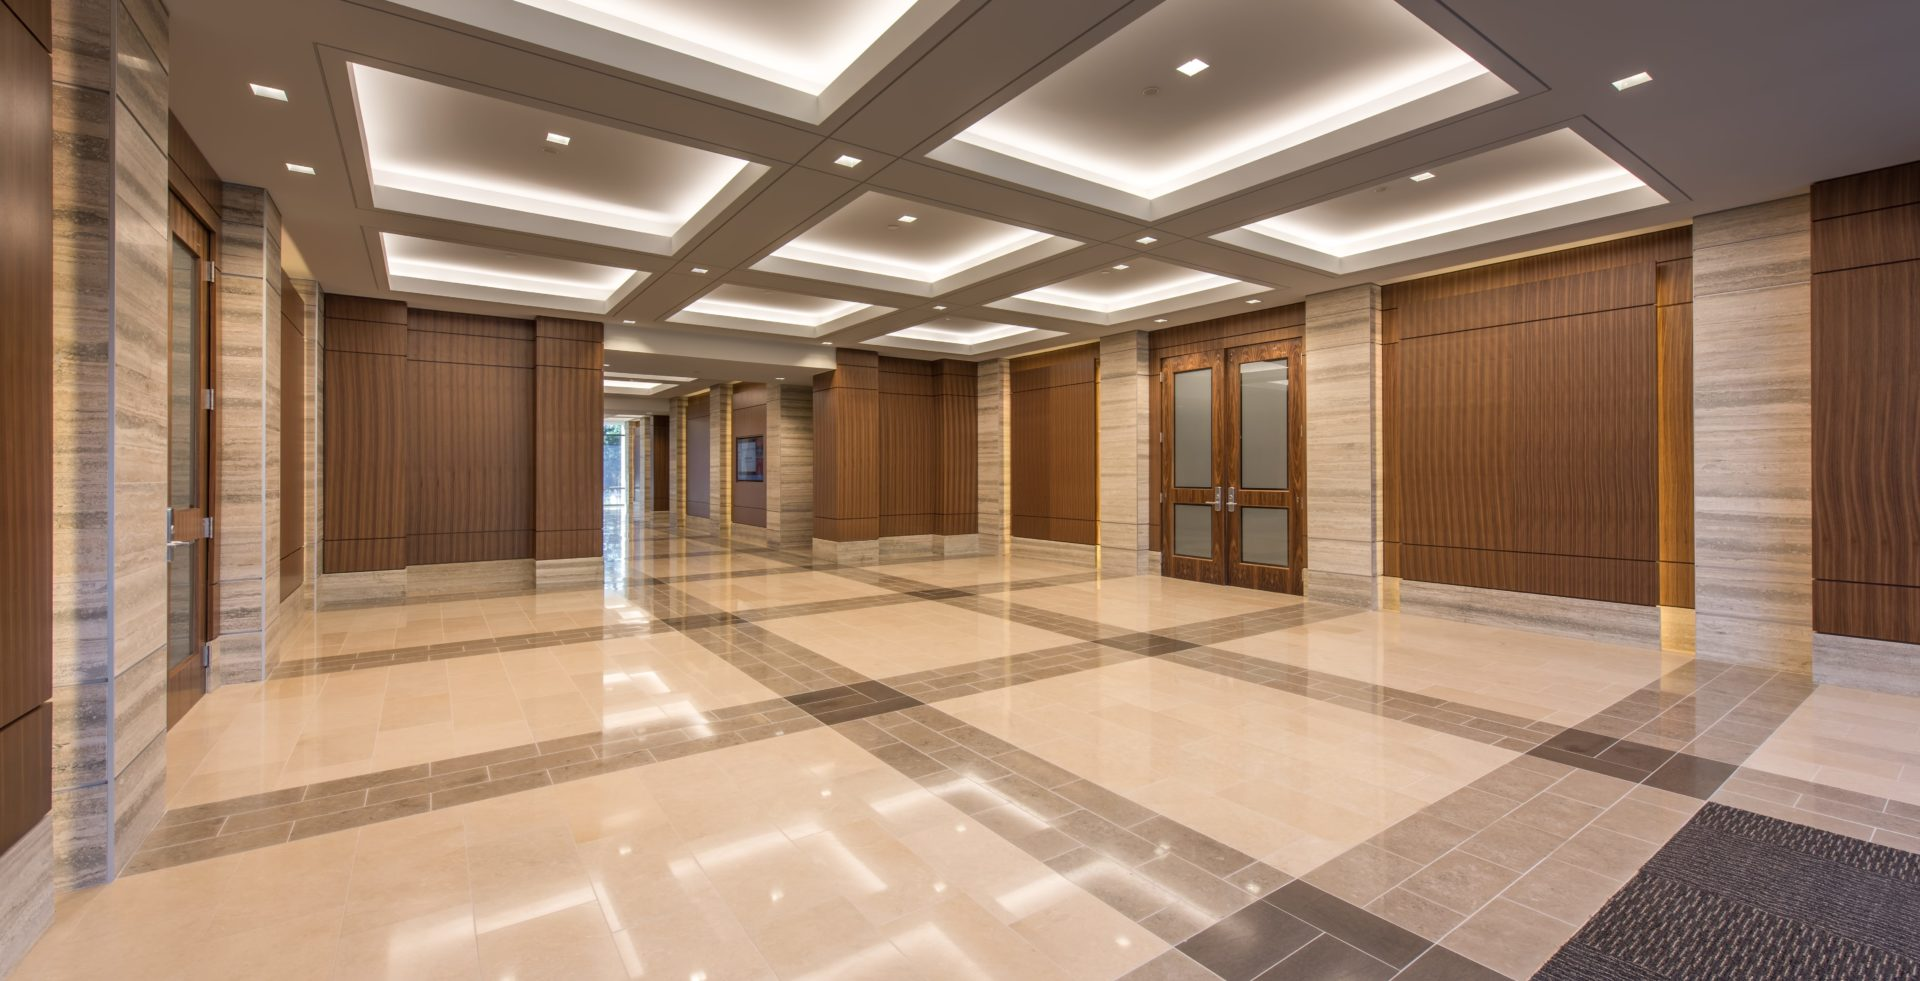 High End Stone Flooring in Reeves Young Lobby